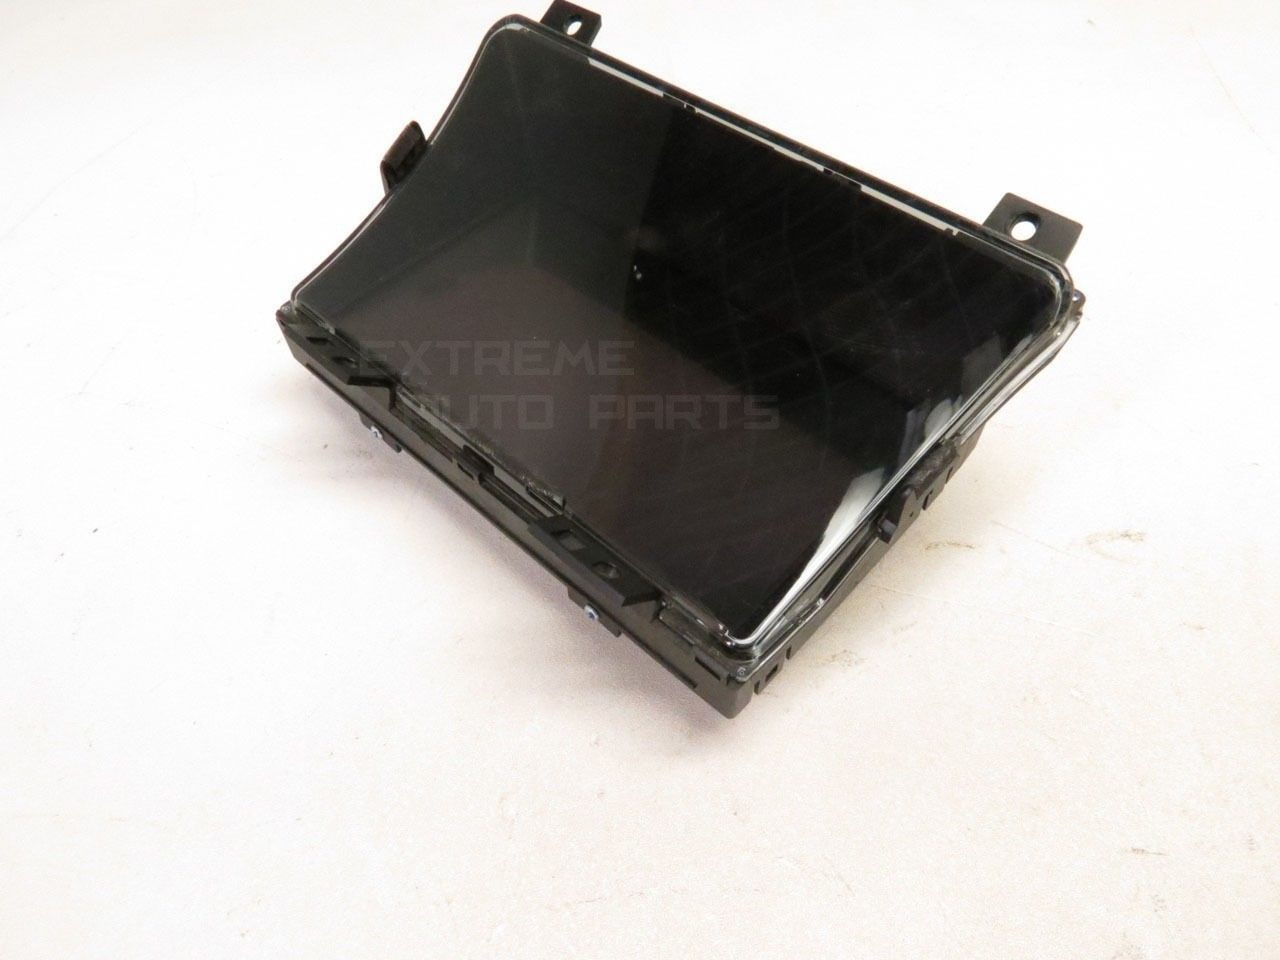 Ais Saab R5 >> Oem Fit Gps For Saab | Upcomingcarshq.com